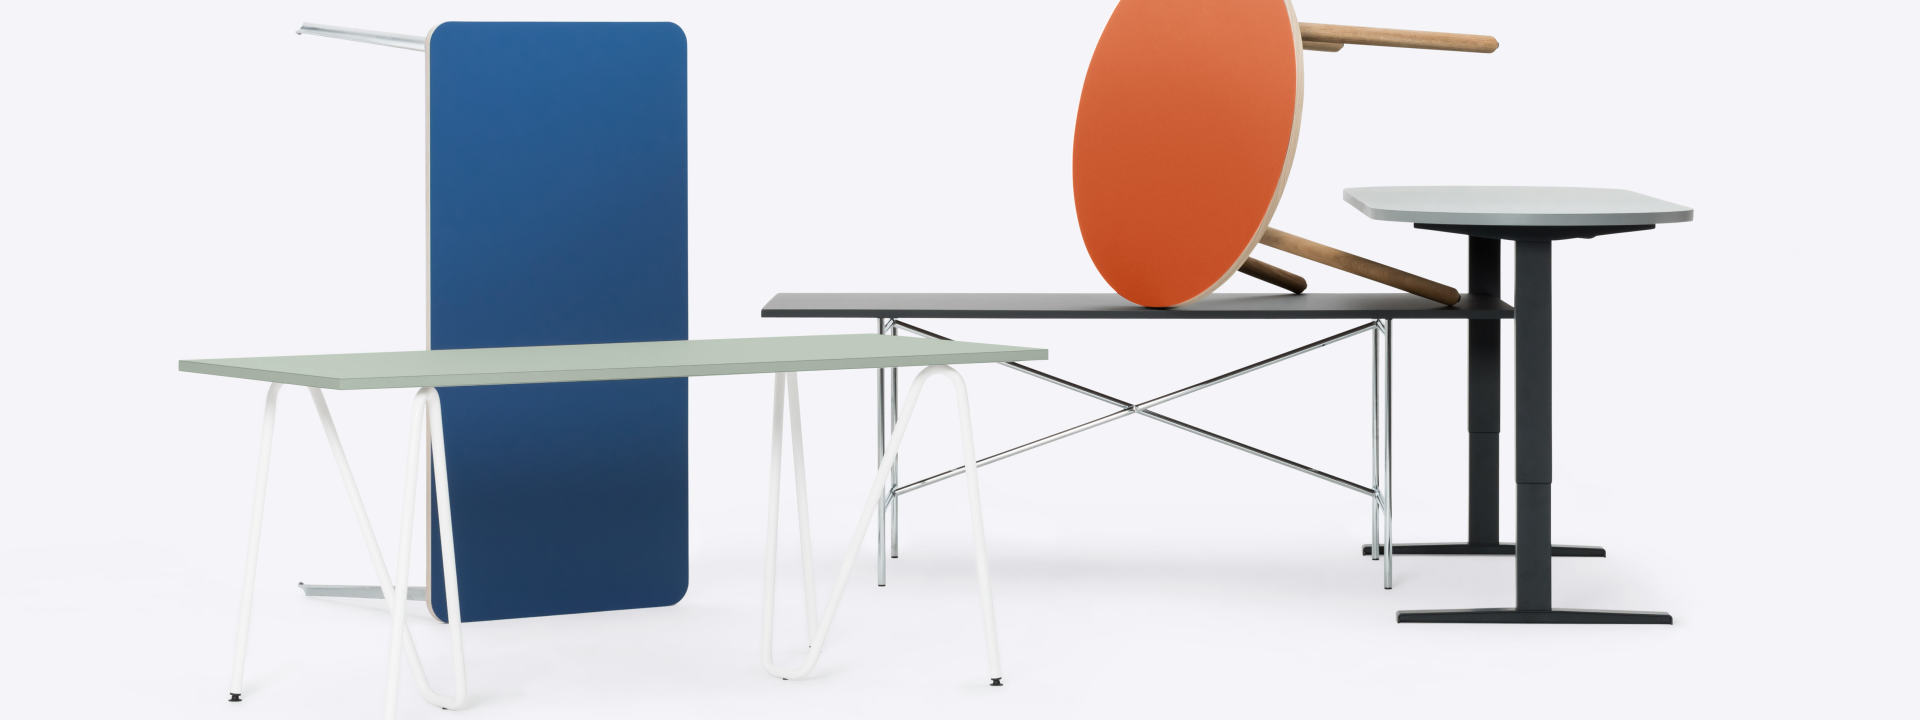 Home, Tabletops, Tables & Trestles, Seating Systems, Office, Accessories